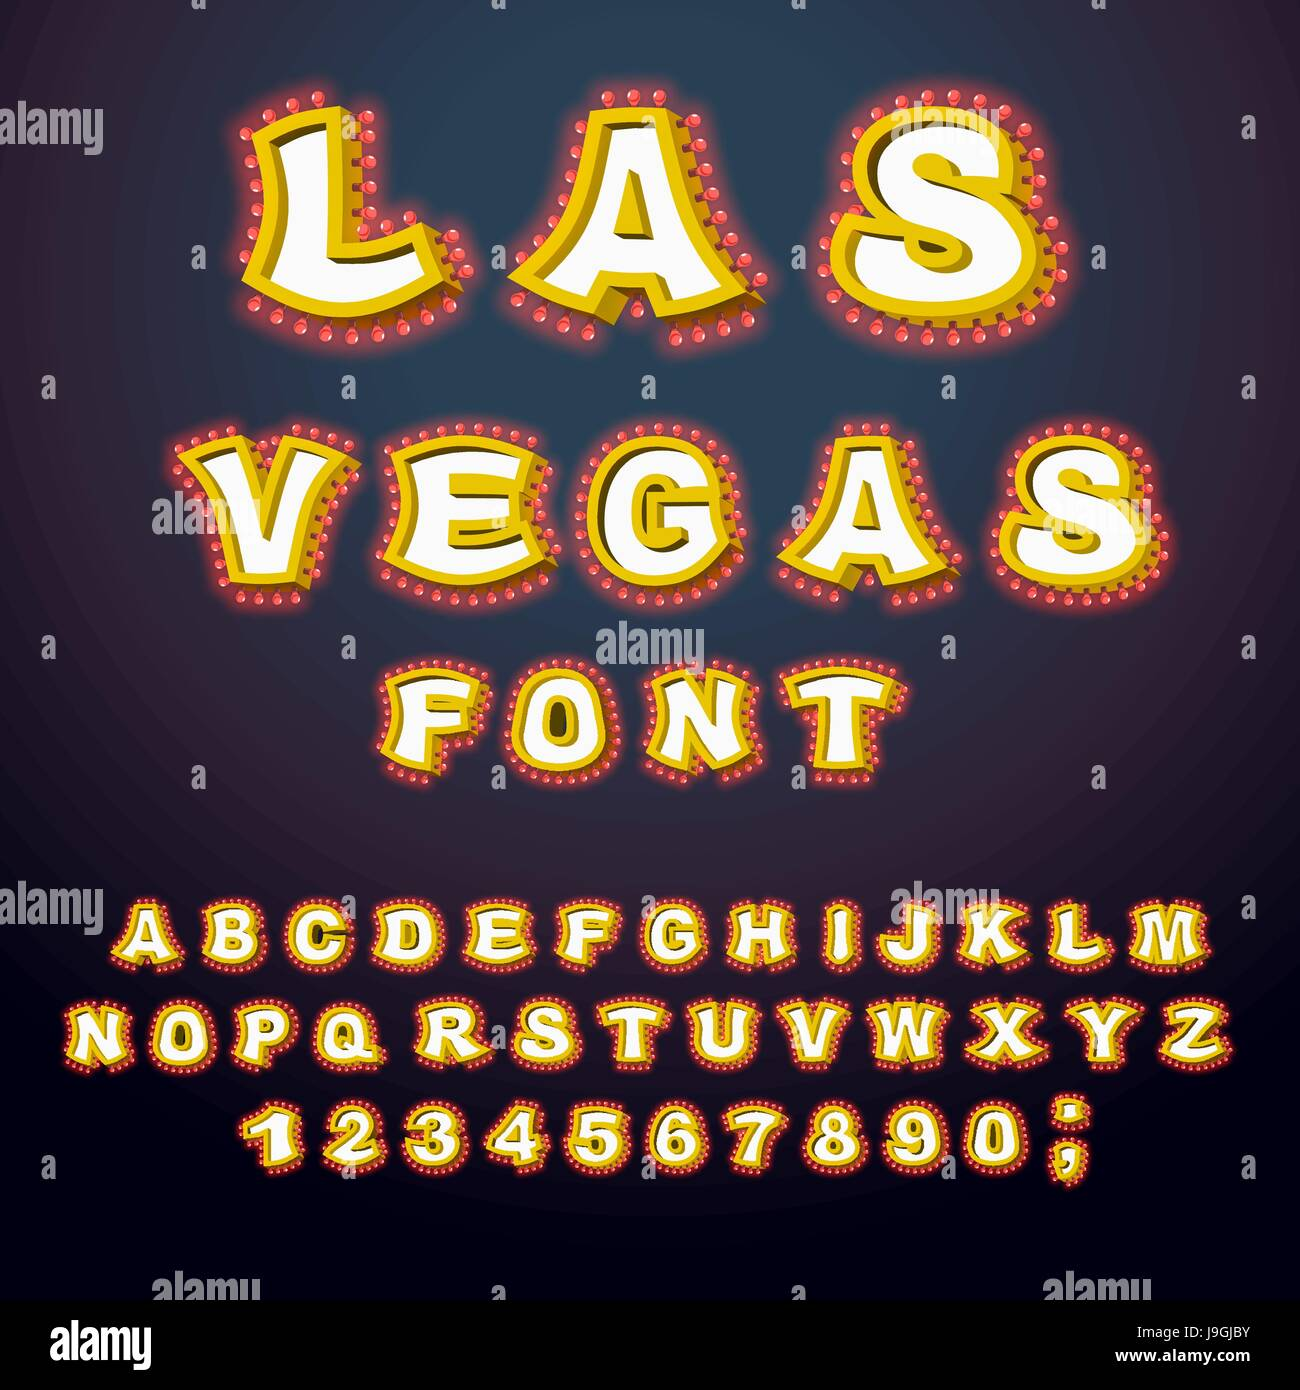 Las Vegas Font Glowing Lamp Letters Retro Alphabet With Lamps Vintage Show ABC Light Bulb Glittering Lights Lettering